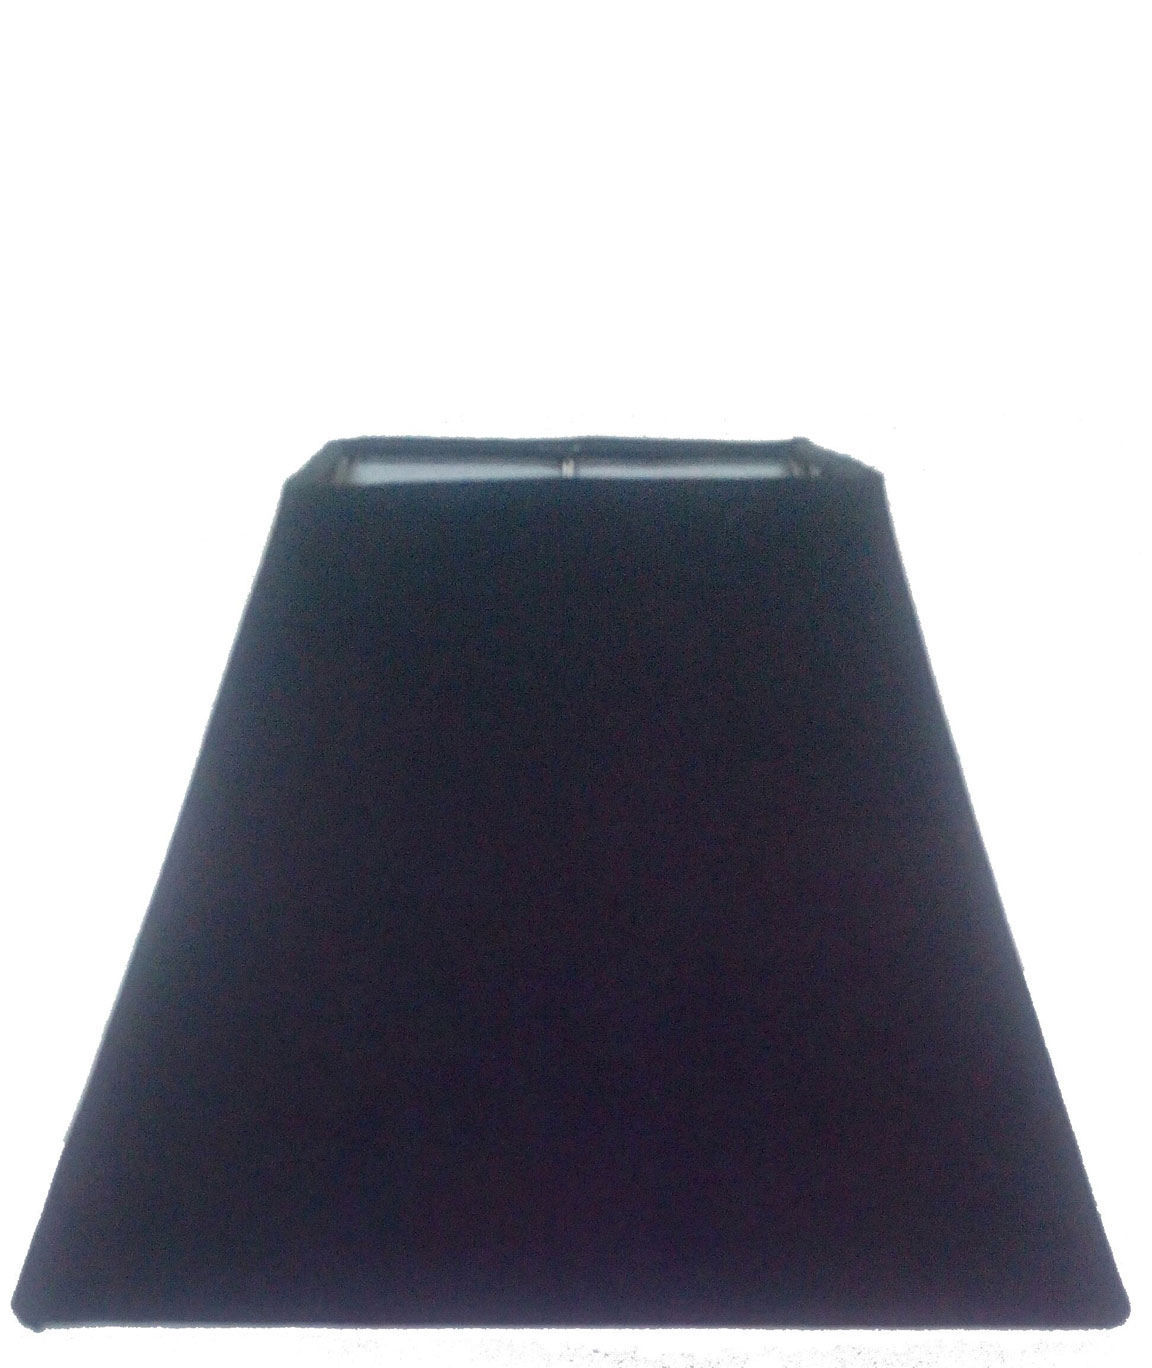 RDC 8 Inches Square Plain Black Lamp Shade for Table Lamp